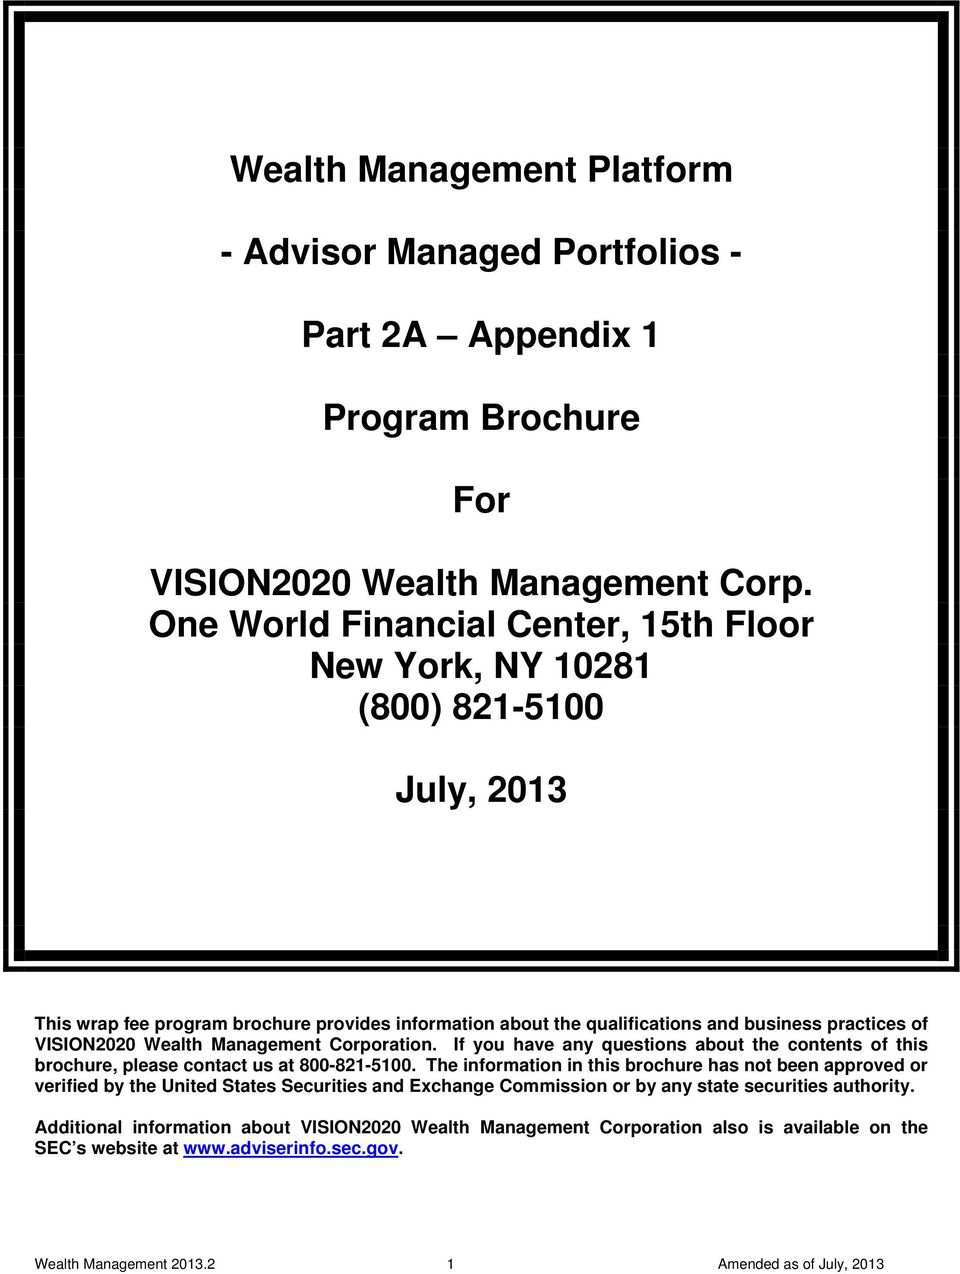 Wealth Management Corporation. If you have any questions about the contents of this brochure, please contact us at 800-821-5100.